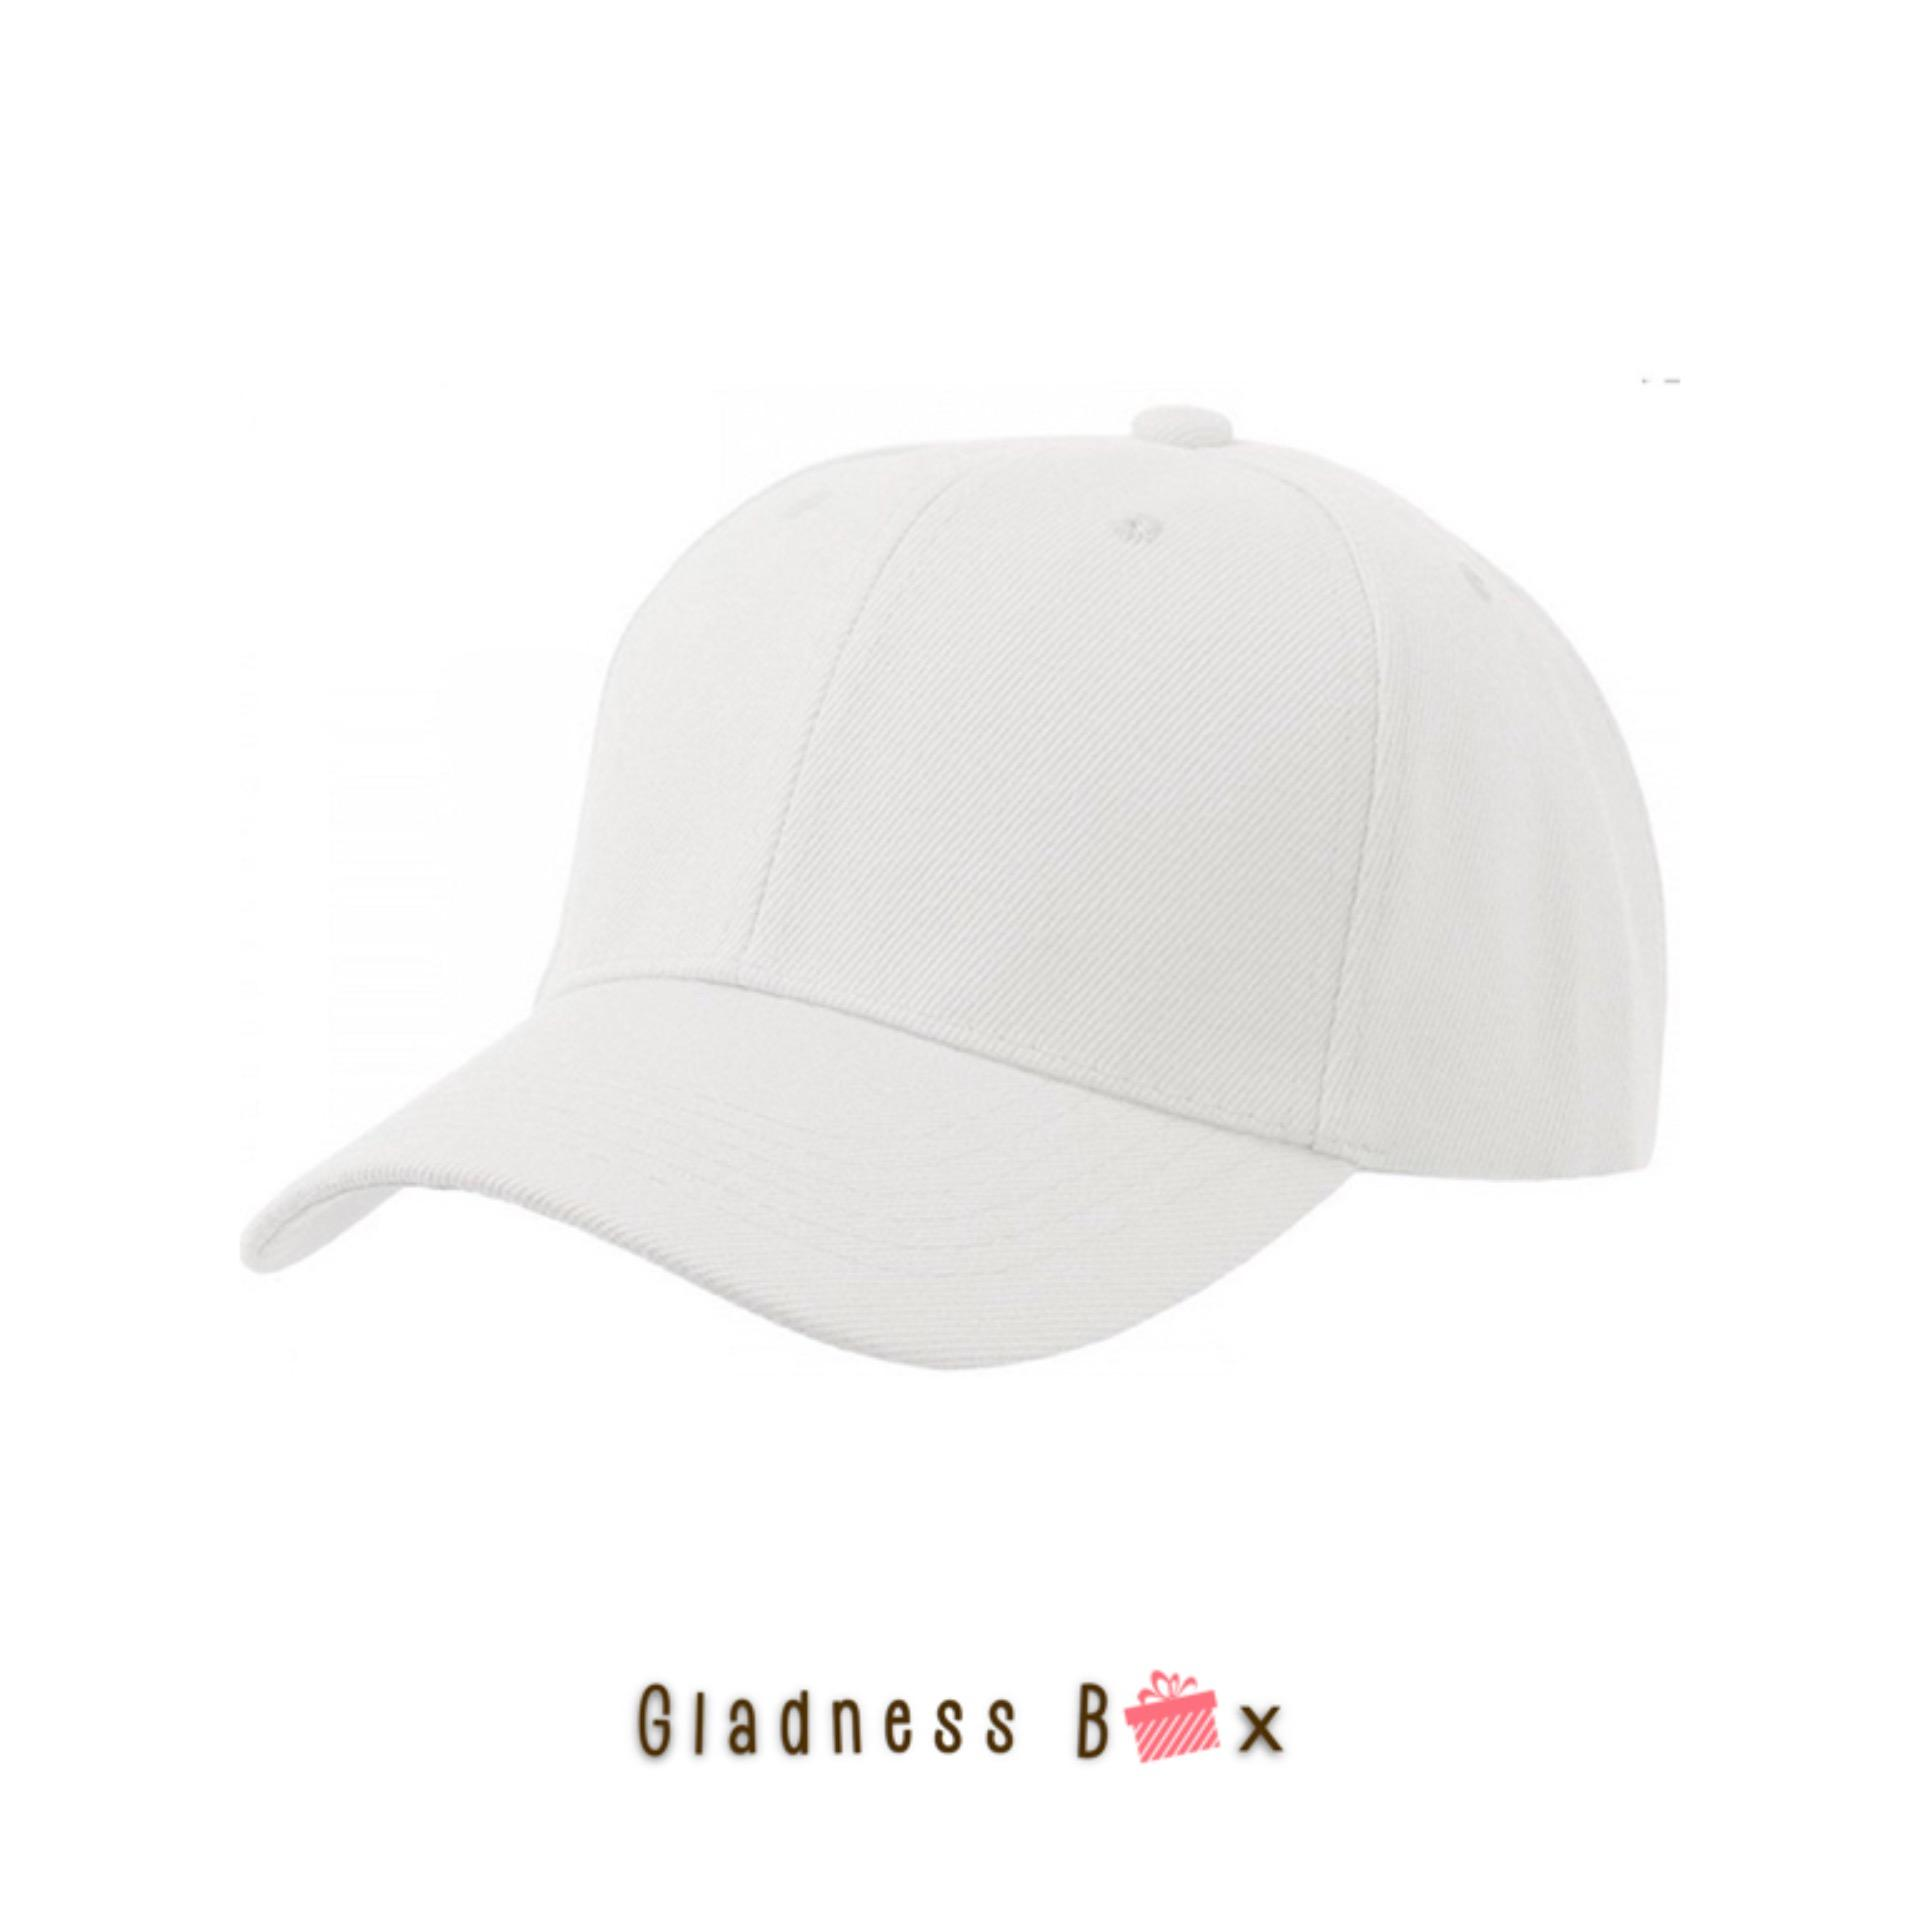 53f274fdb45 Hats for Men for sale - Mens Hats online brands